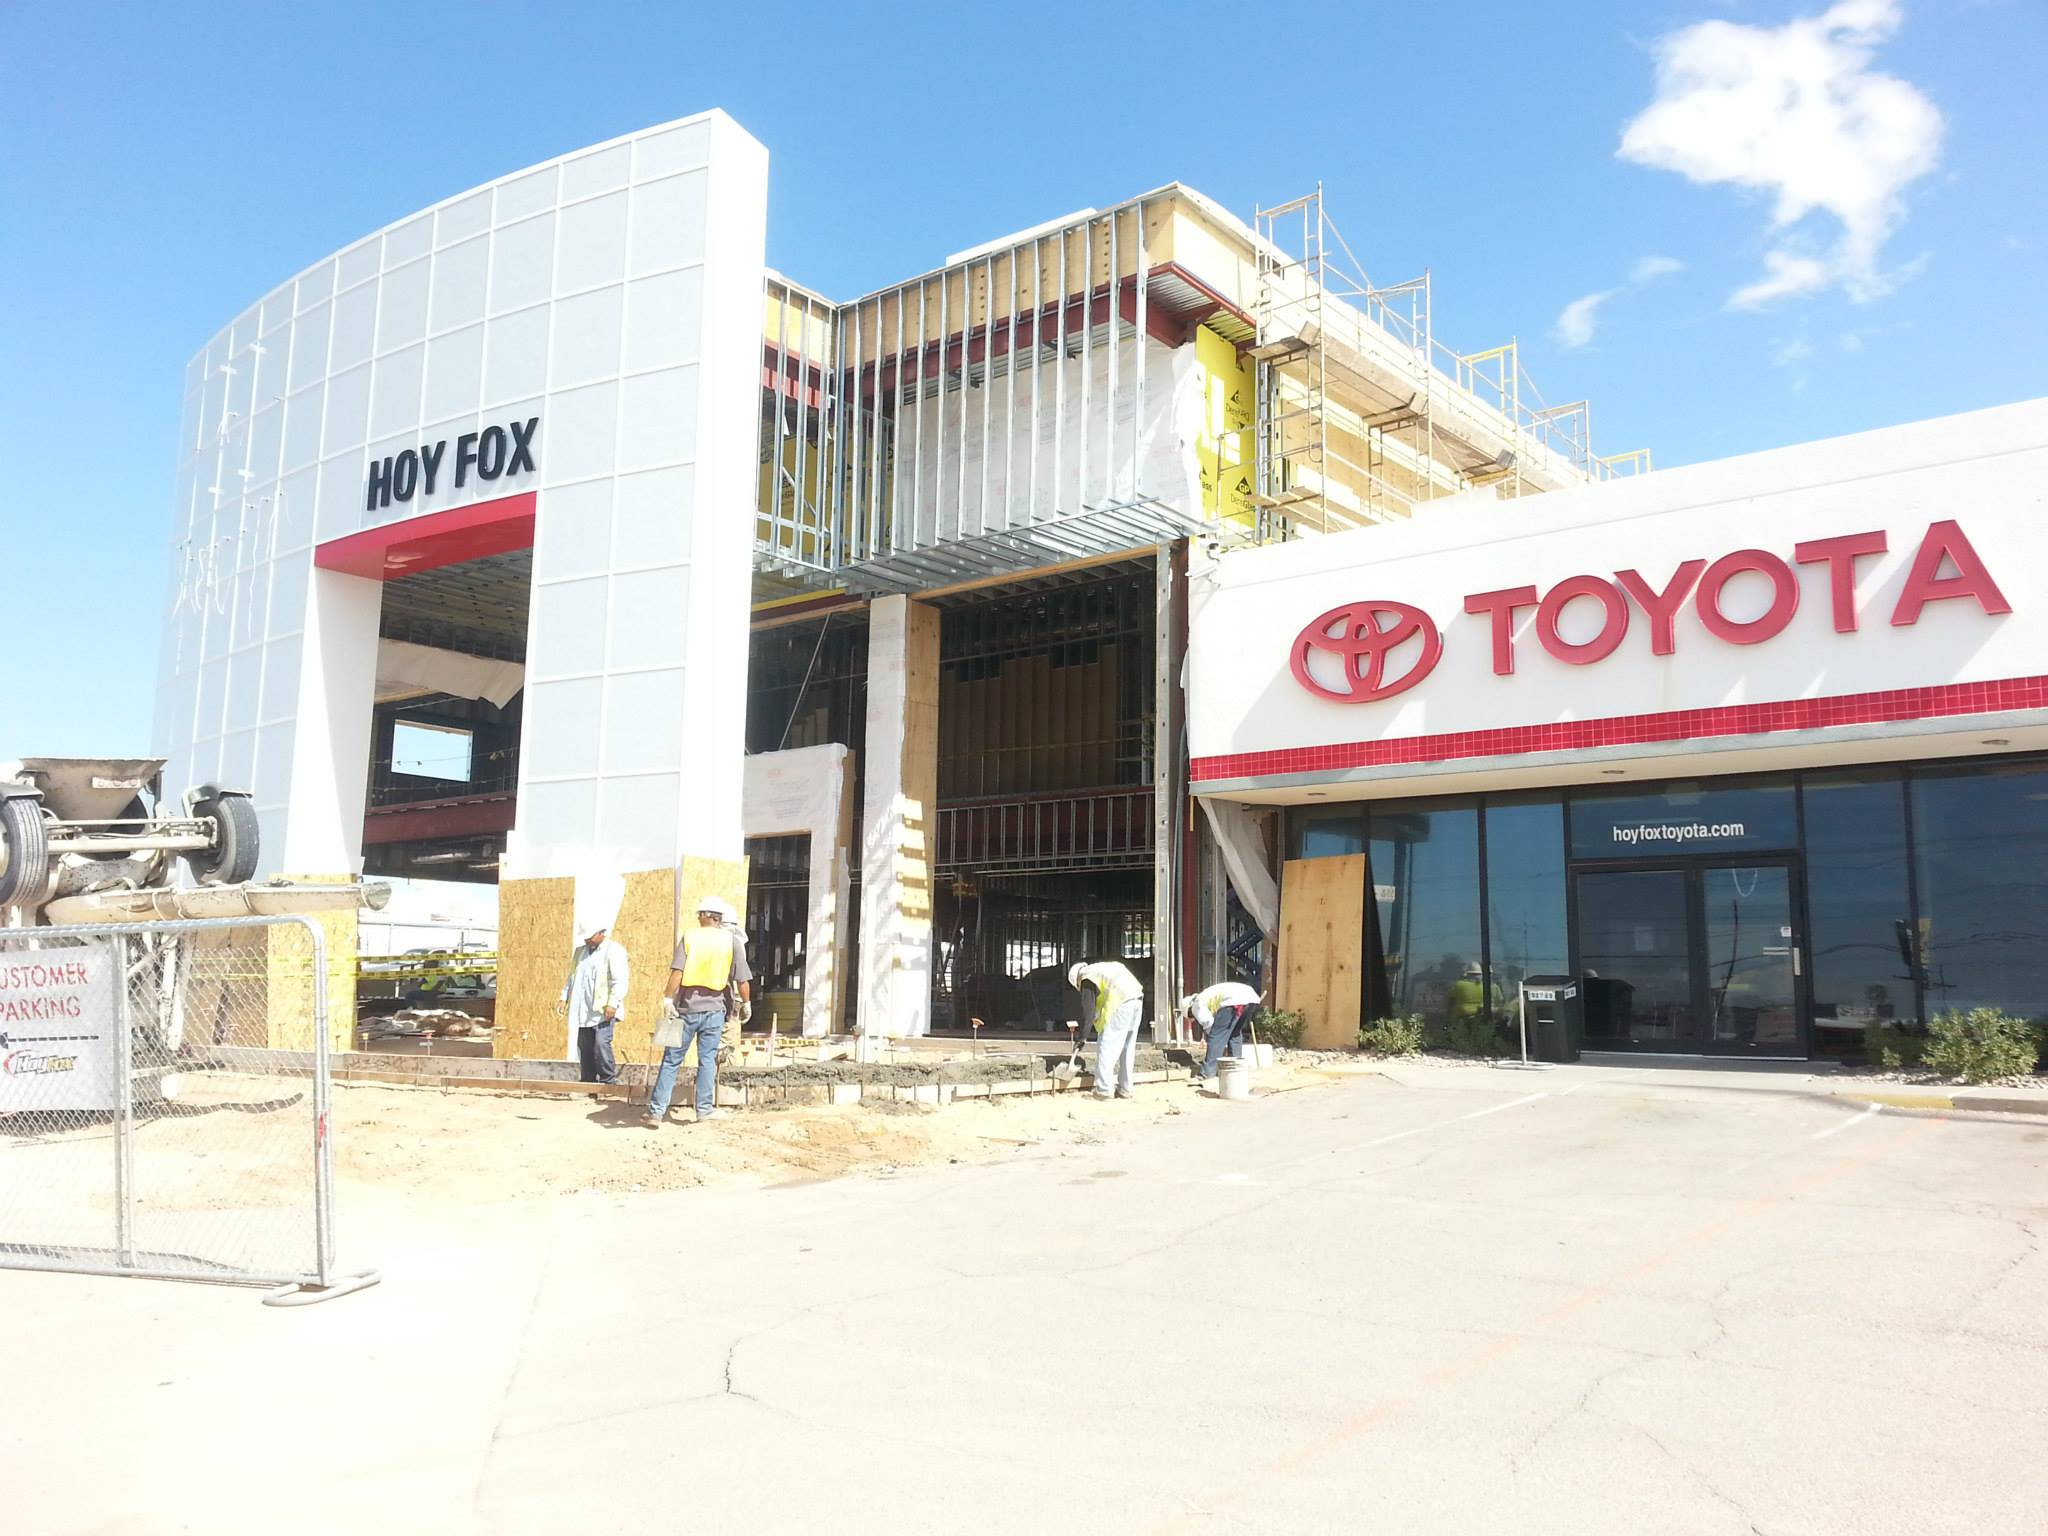 Toyota Dealership El Paso Tx >> Hoy Fox Toyota of El Paso, Texas Nears the Completion of the First Phase of their Dealership ...